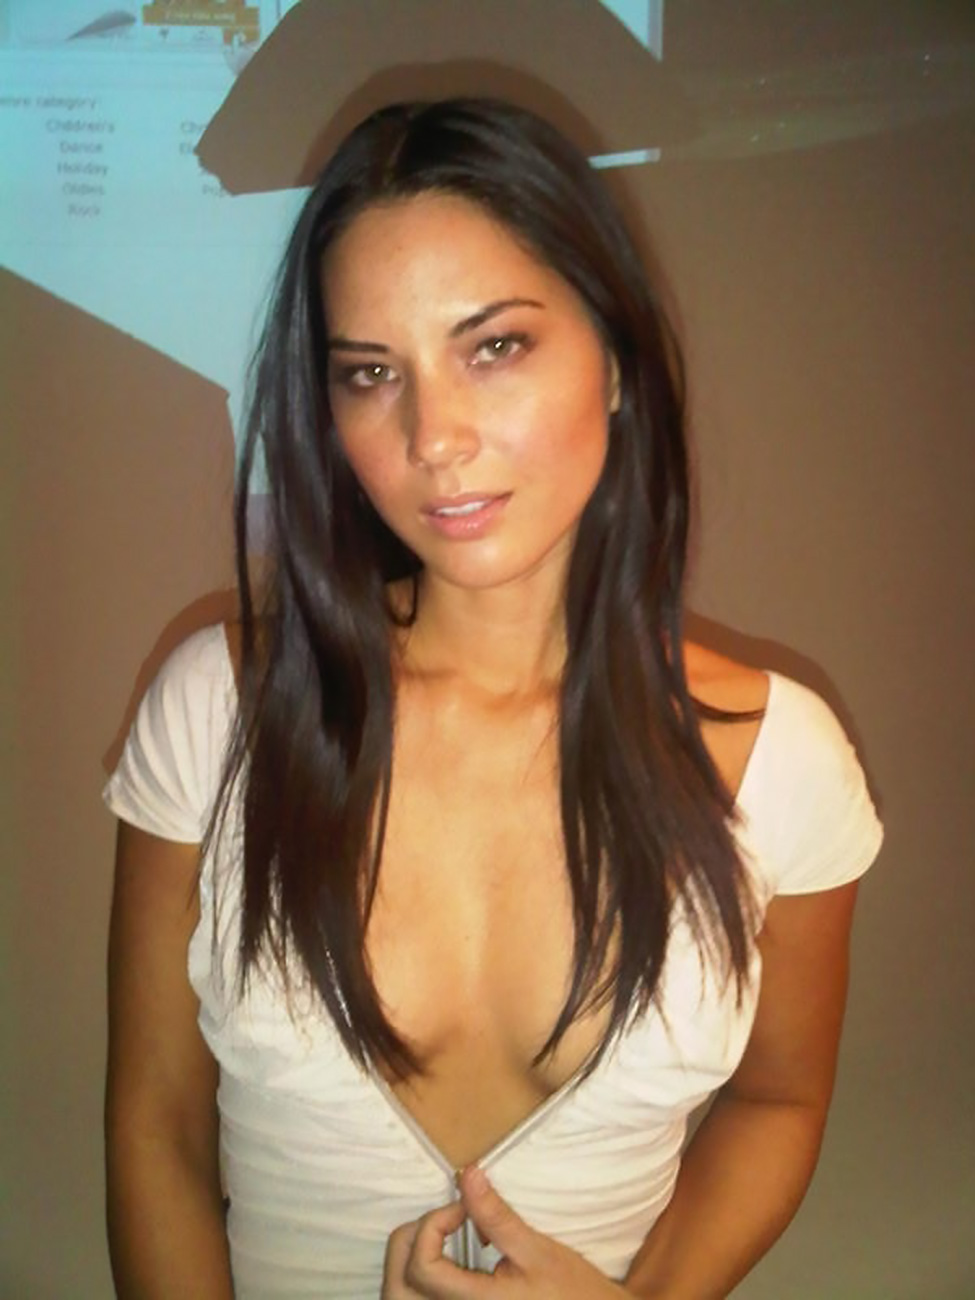 olivia-munn-playboy-nudes-blond-friend-ass